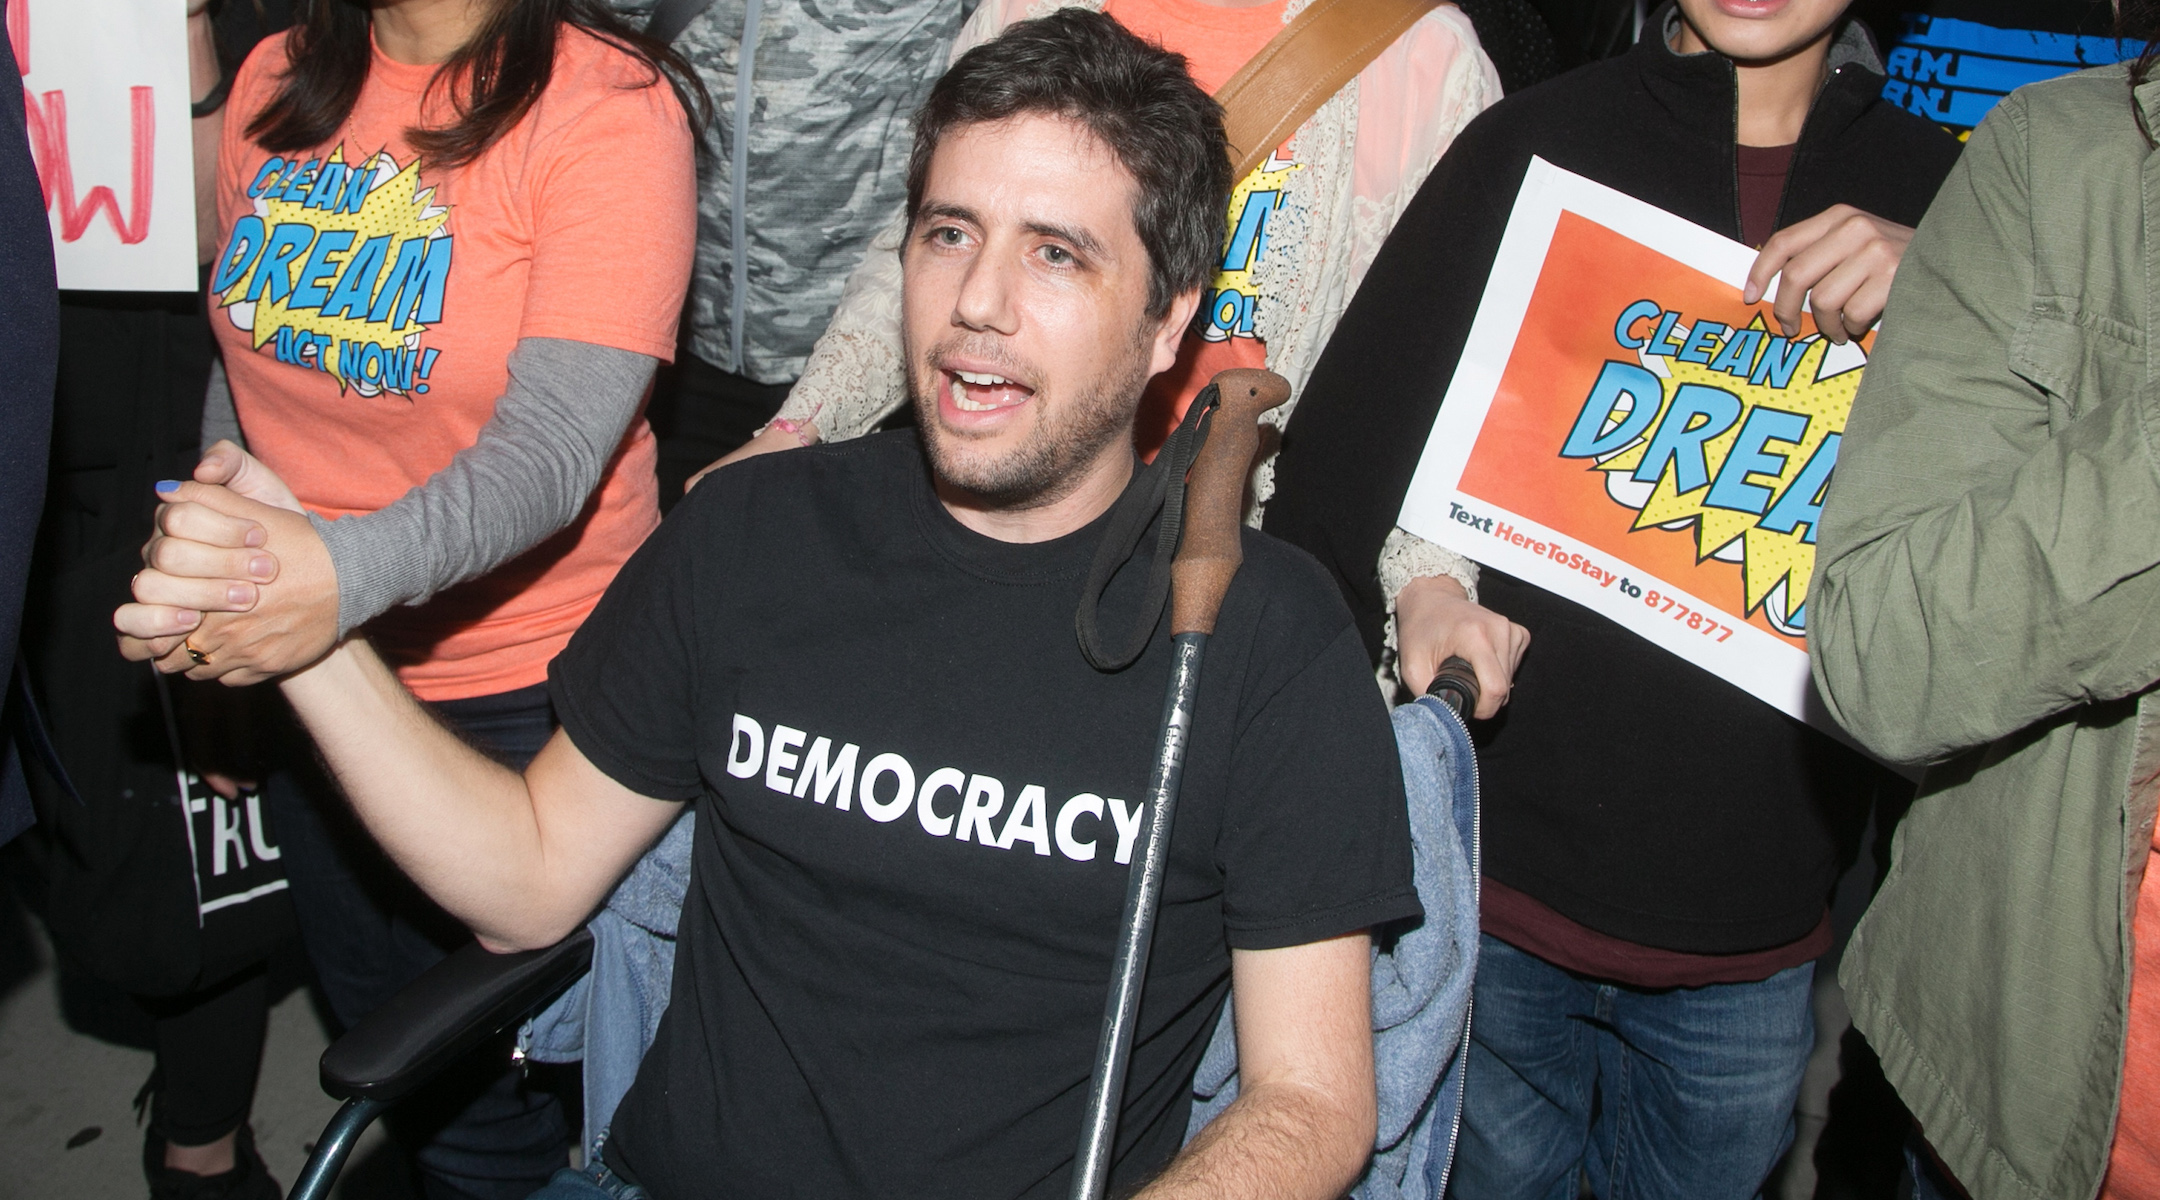 Ady Barkan attends the Los Angeles Supports a Dream Act Now! protest at the office of California Senator Dianne Feinstein on January 3, 2018 in Los Angeles, California. (Gabriel Olsen/Getty Images)